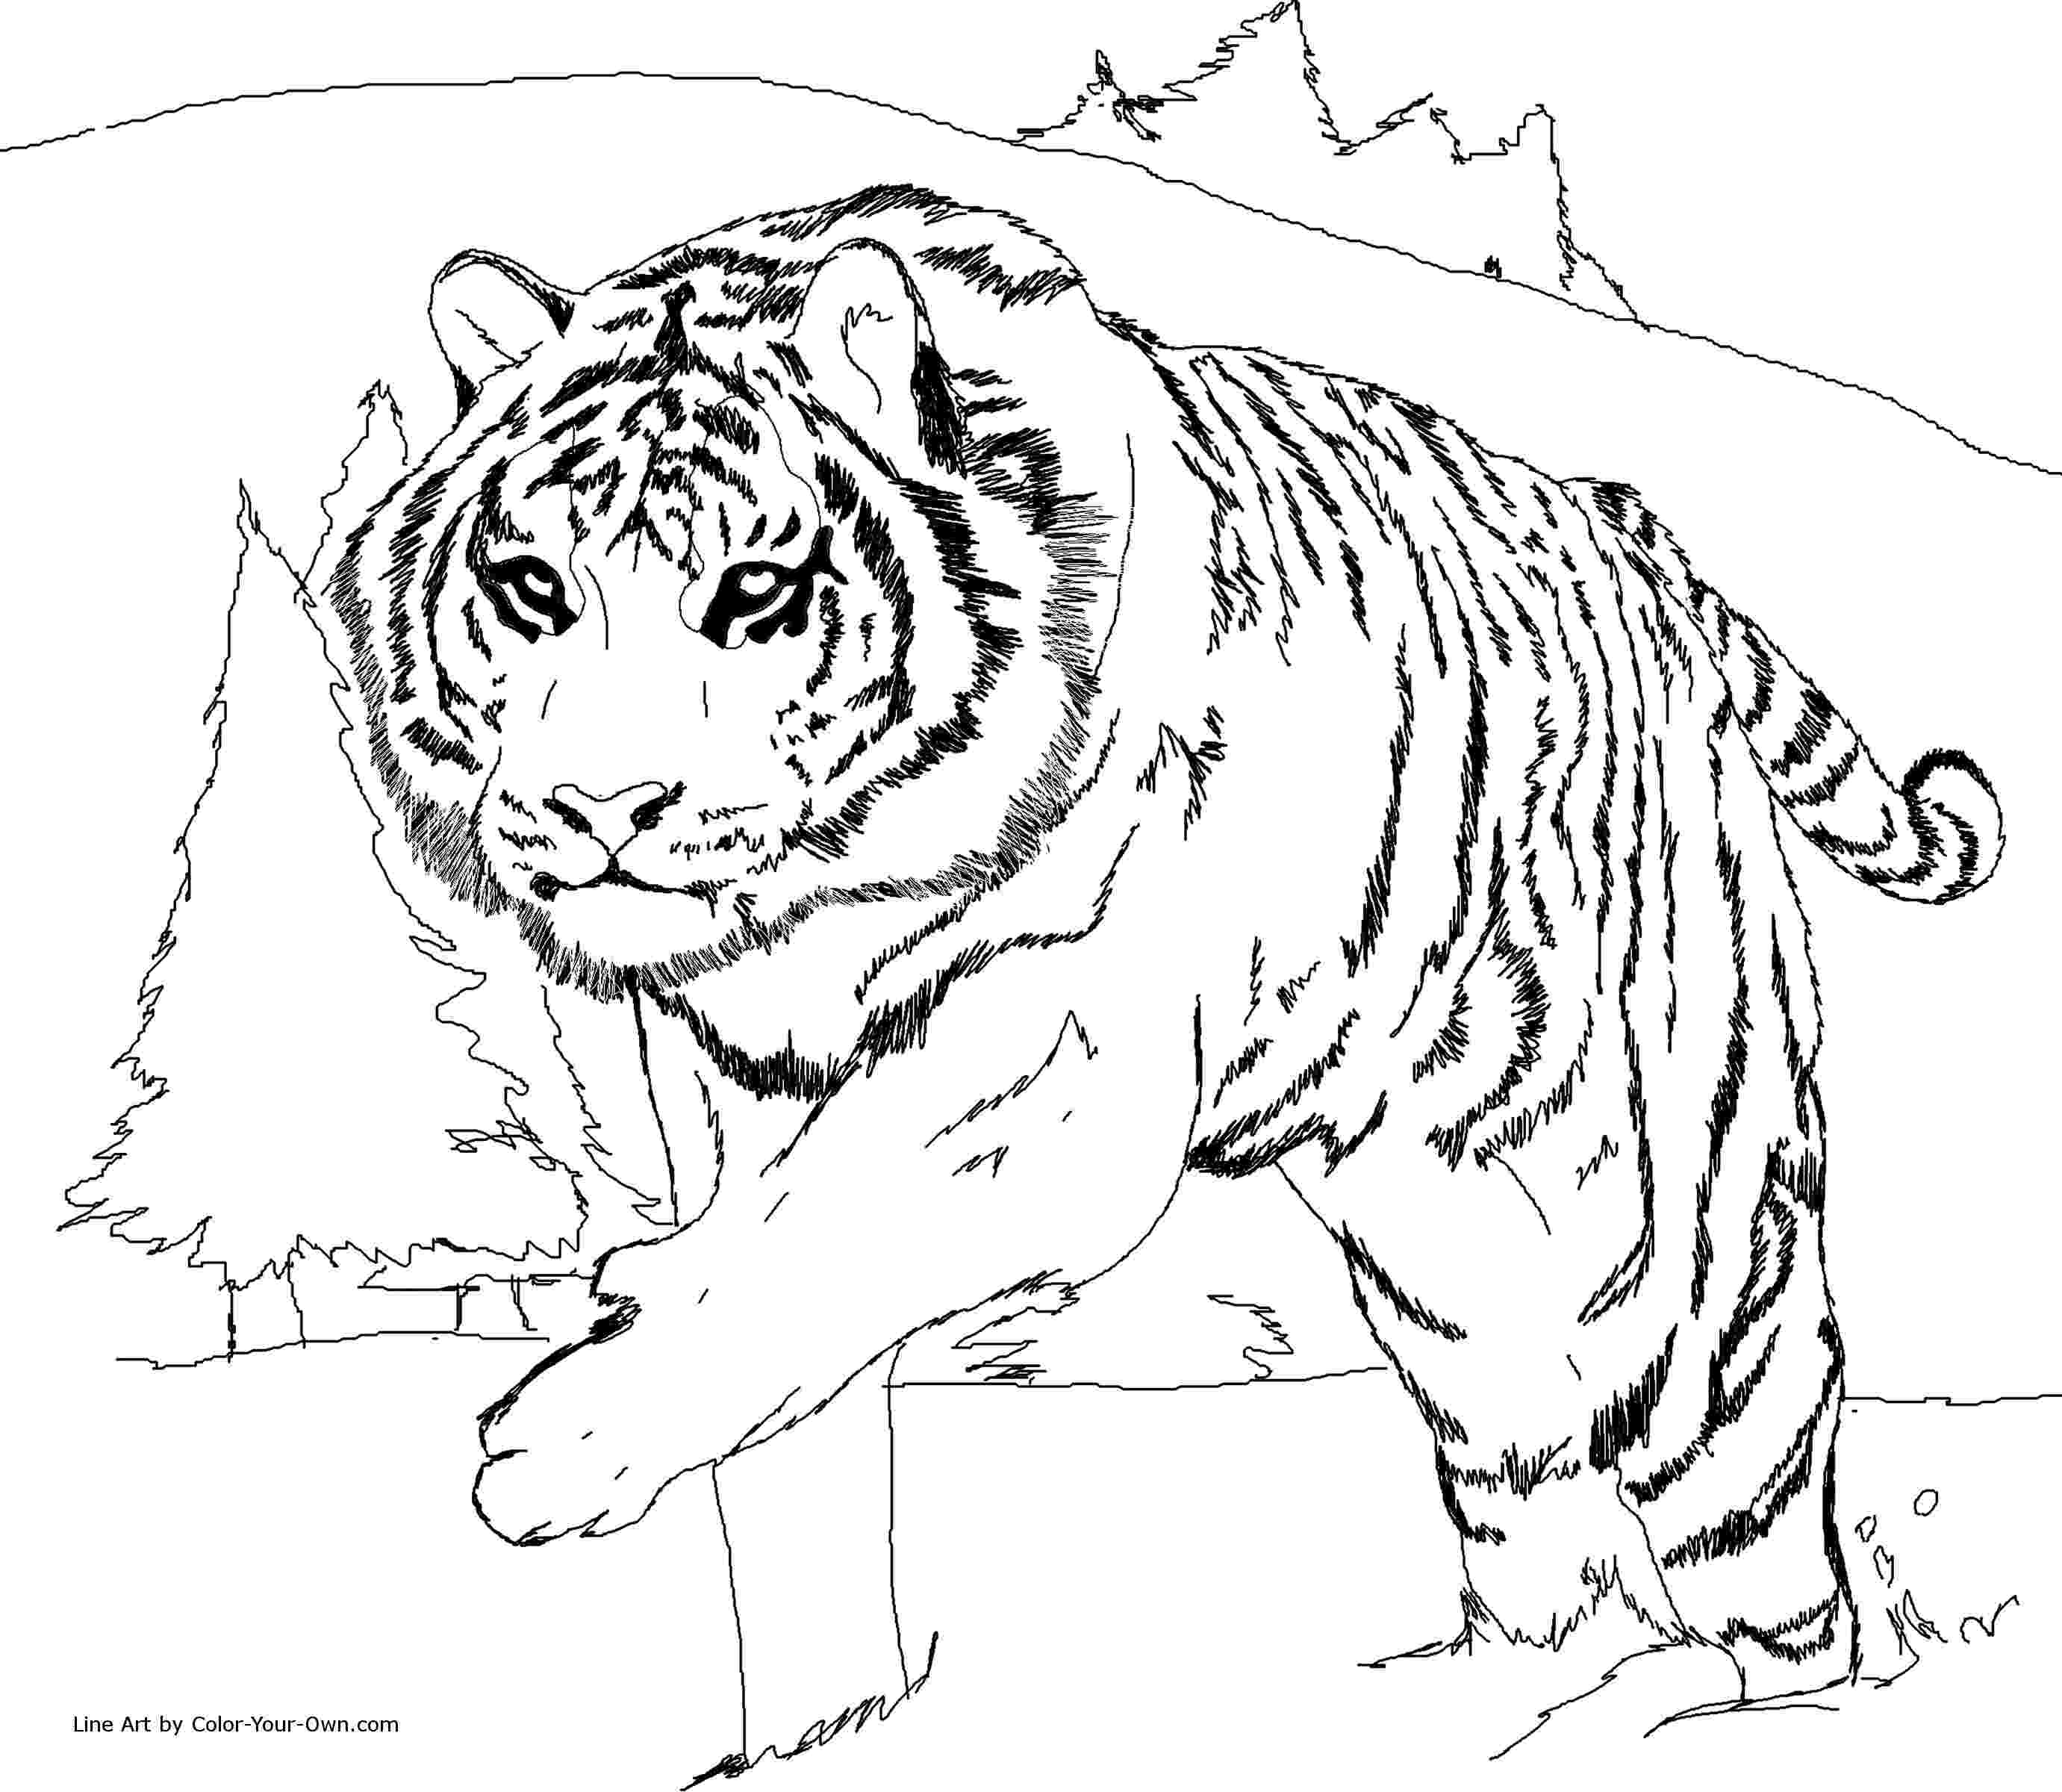 siberian tiger coloring page siberian or amur tiger coloring page free printable page coloring siberian tiger